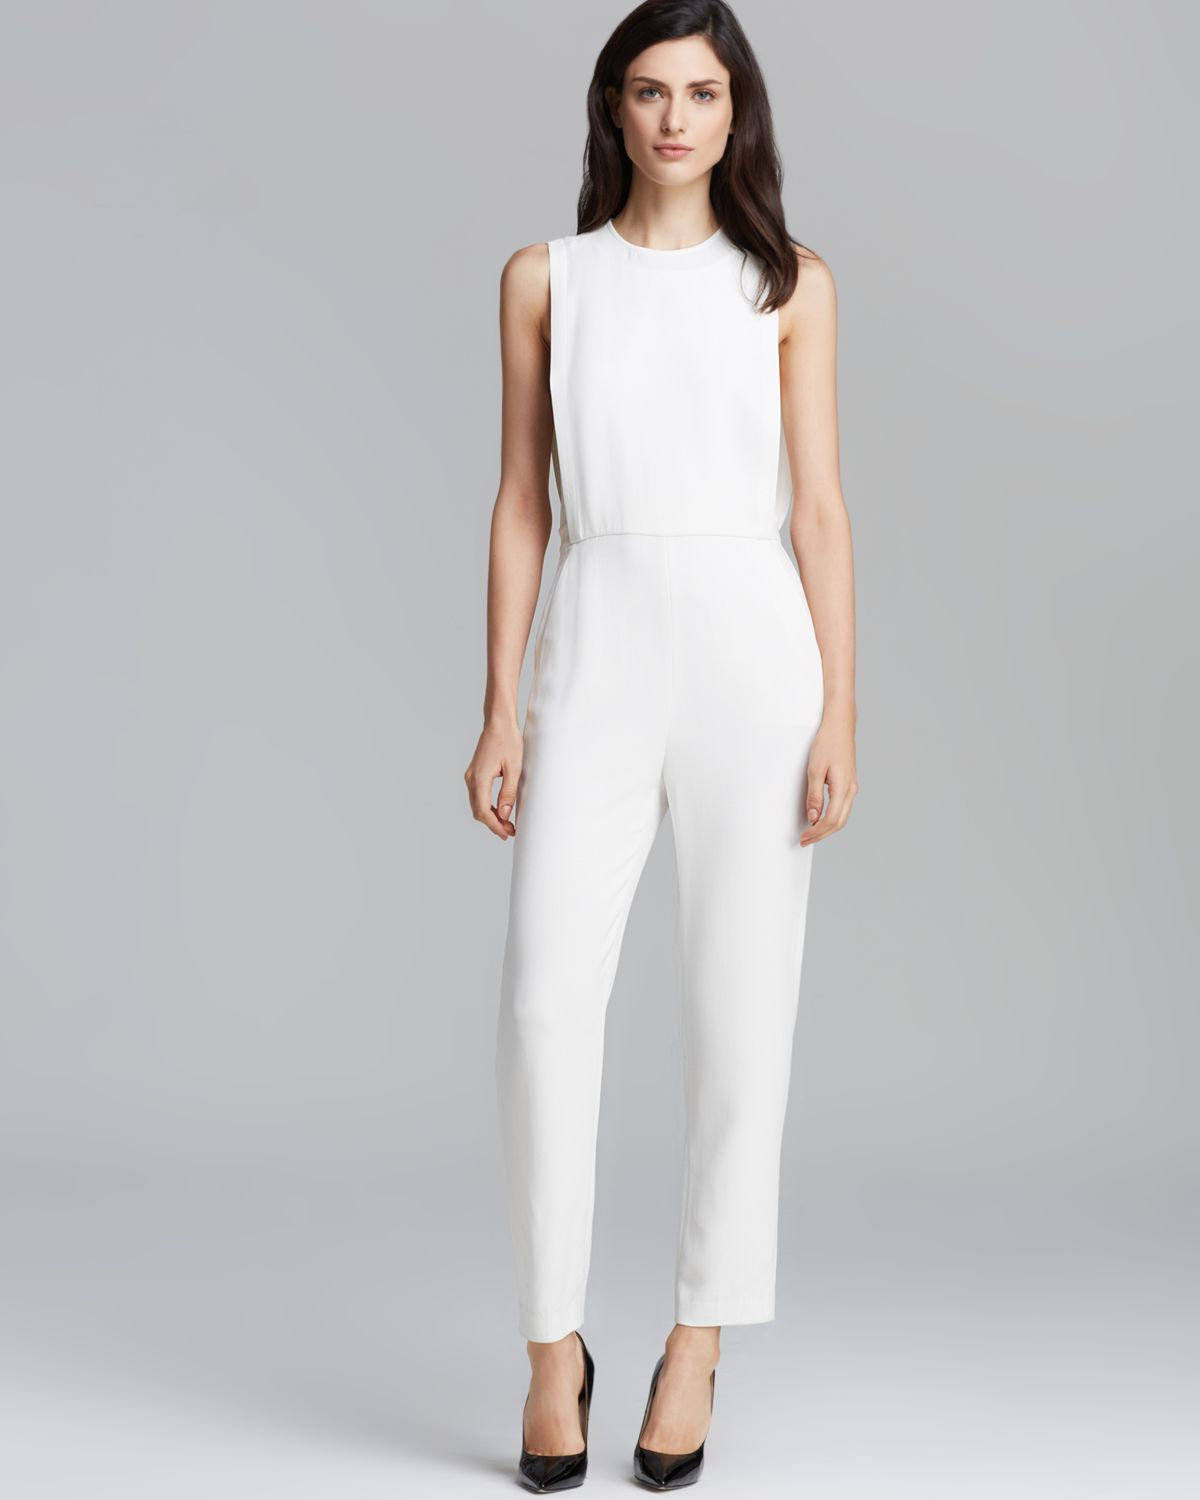 25 Original Women White Jumpsuits U2013 Playzoa.com